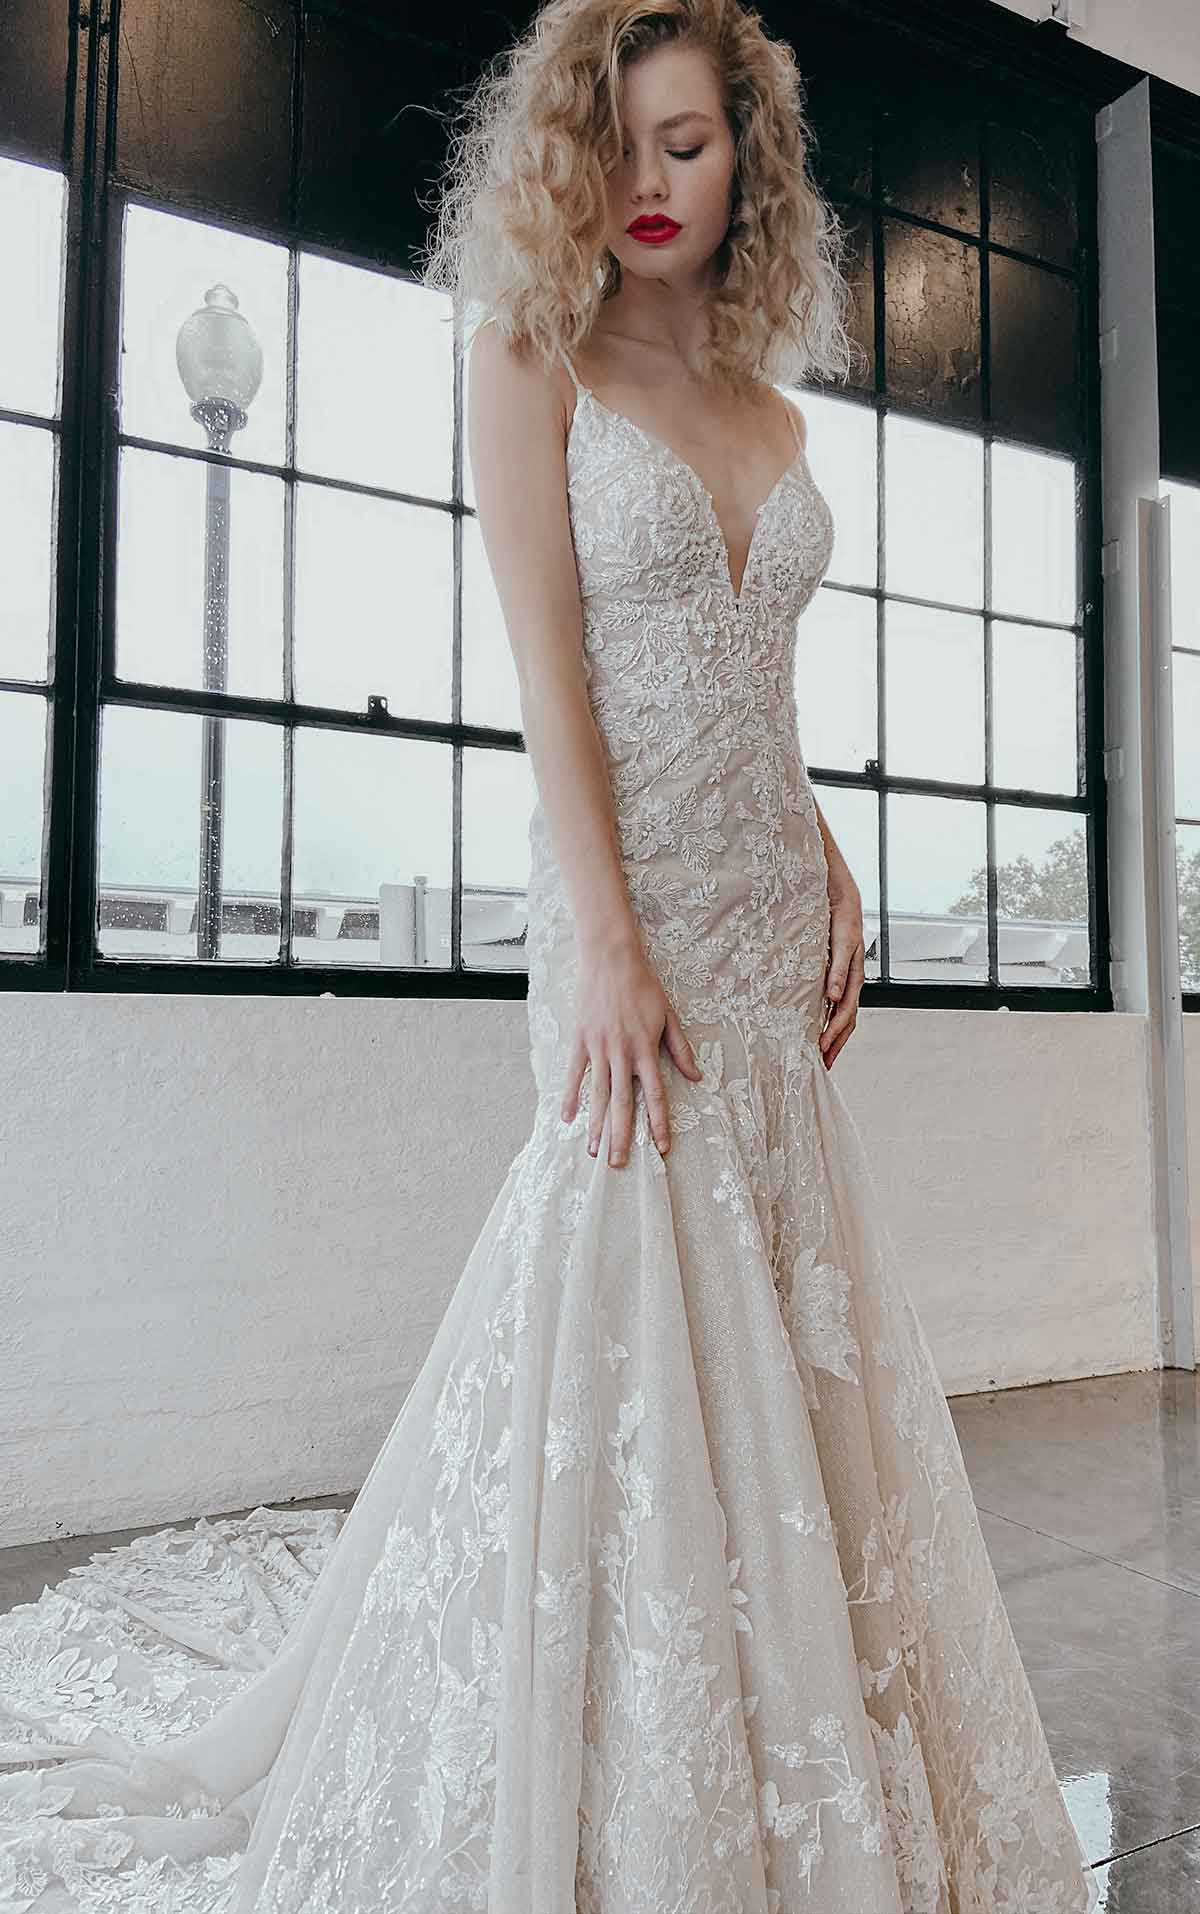 1301 Sexy Organic Lace Wedding Dress with Sparkle Elements by Martina Liana